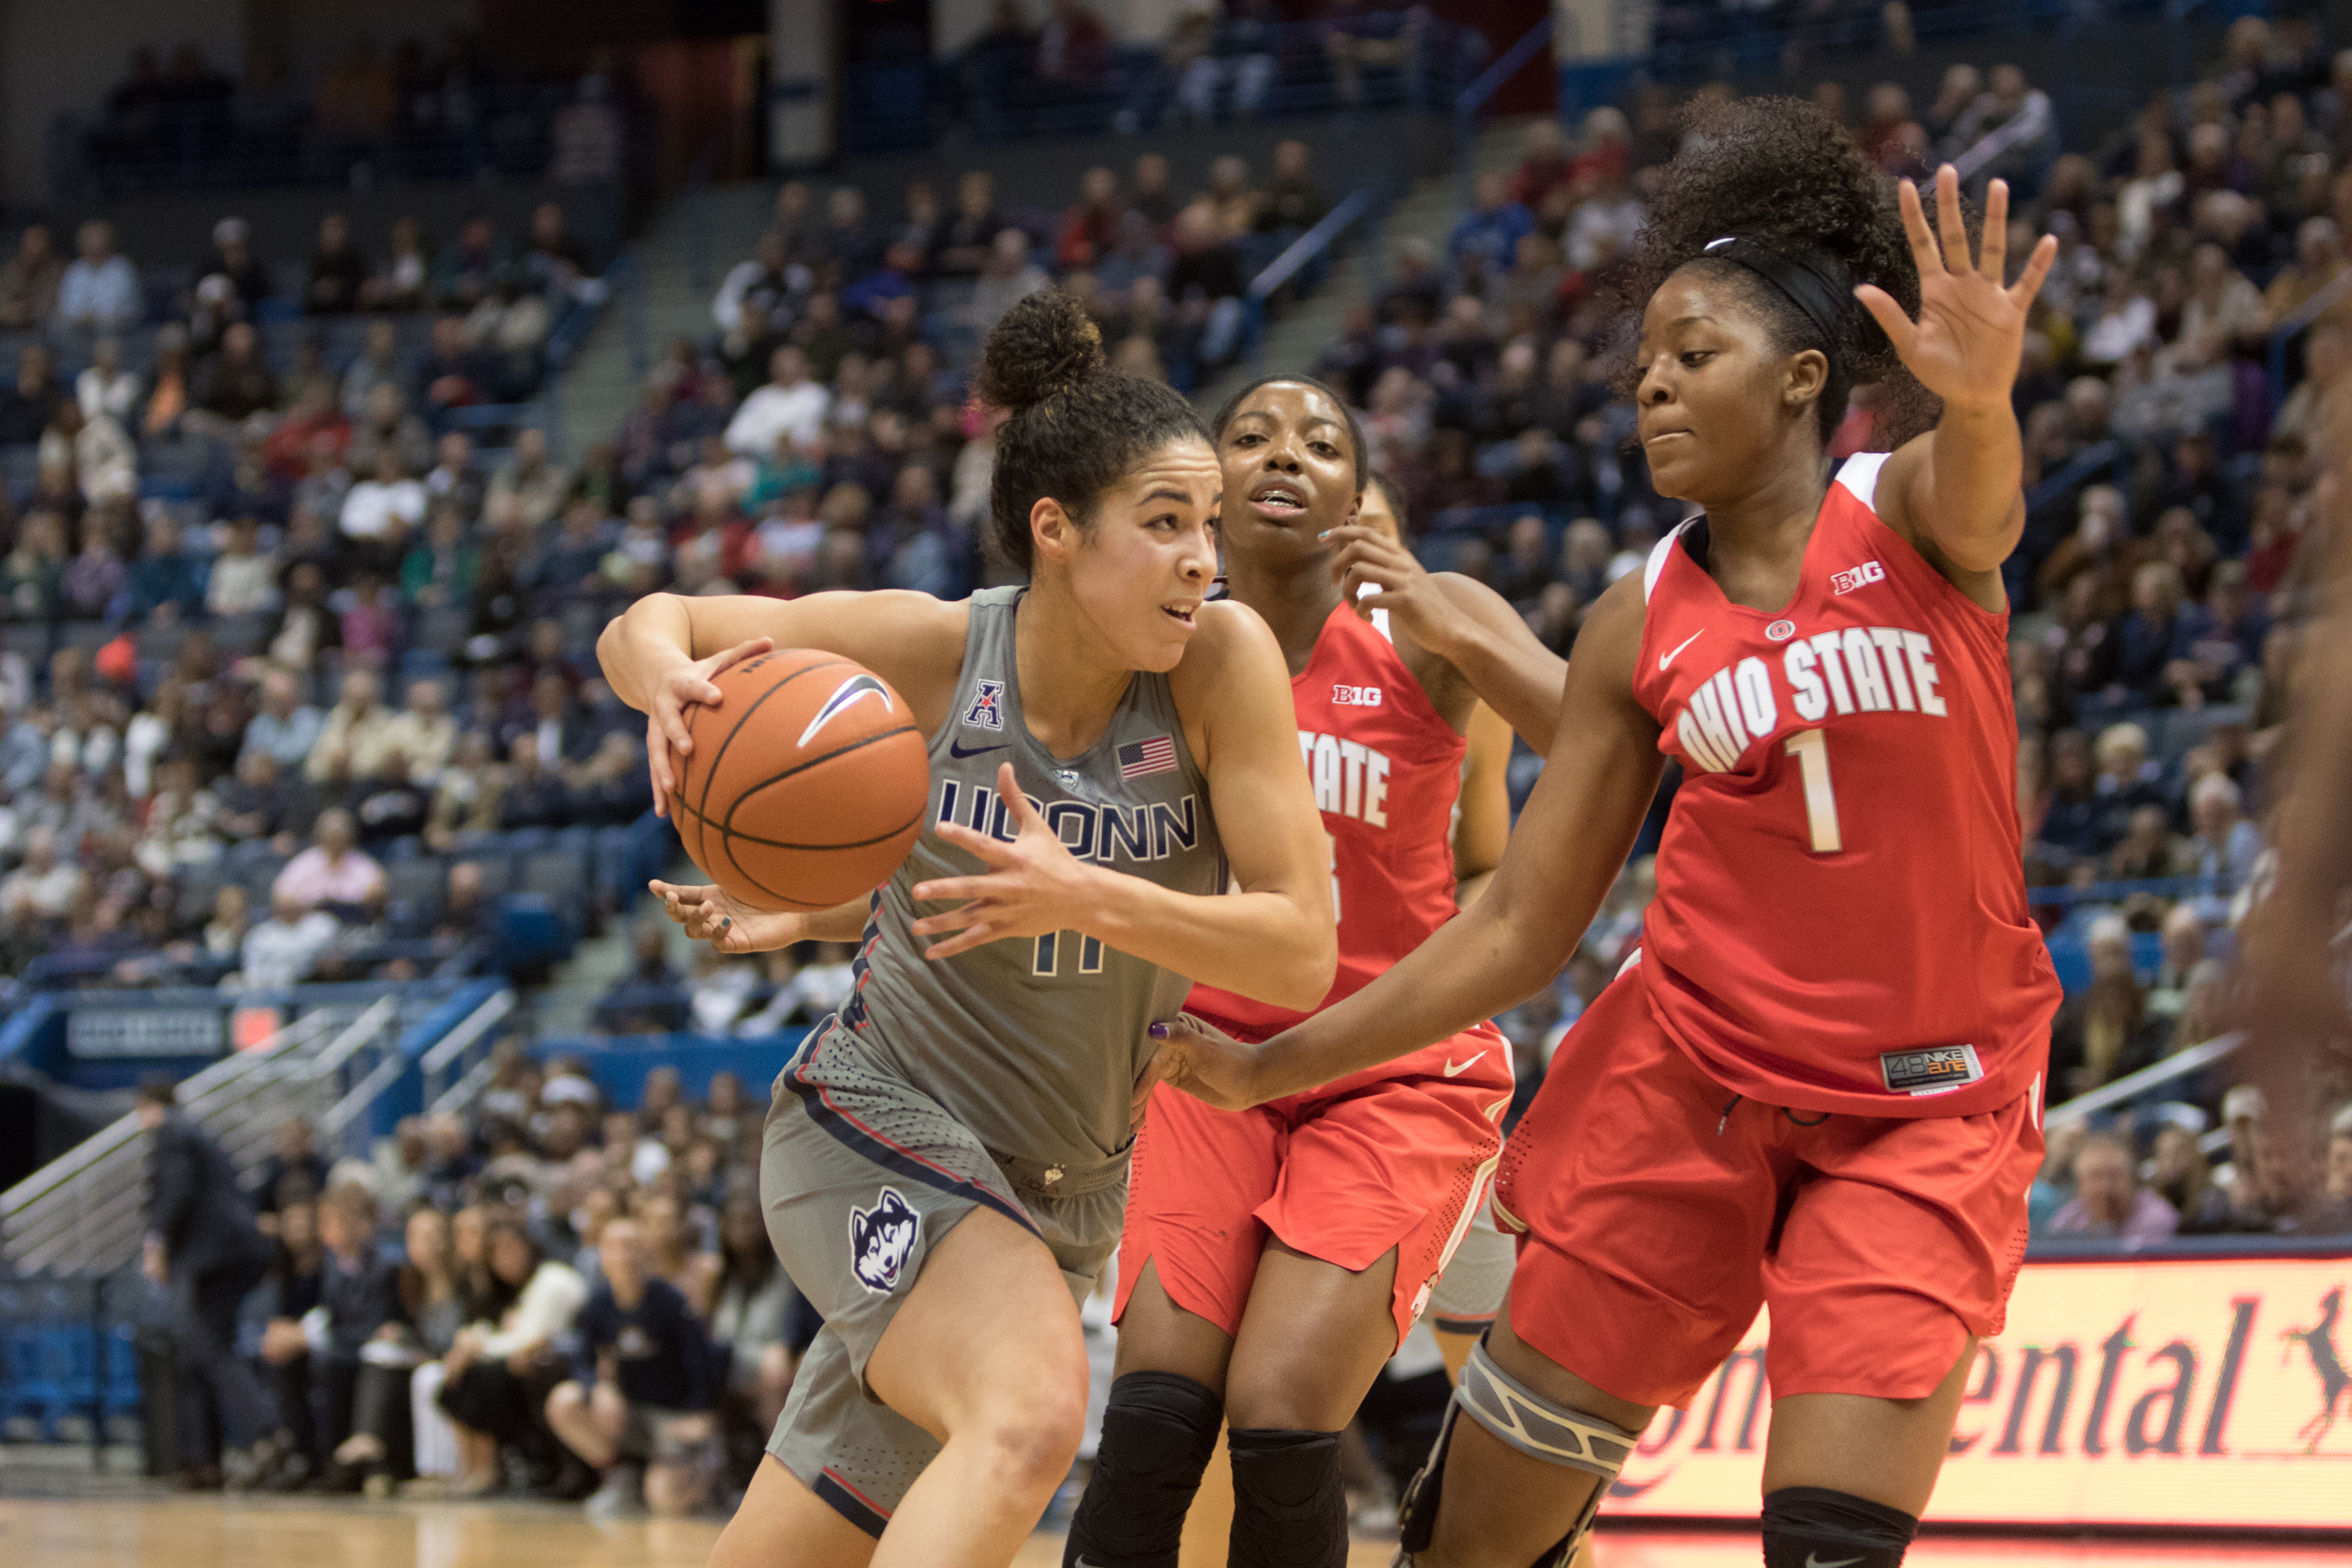 Kia Nurse goes up against Ohio State defenders in a game at the XL Center on Monday, Dec. 19. Nurse and the rest of the Huskies will put their 86-game winning streak on the line when they take on fellow undefeated team Maryland on Thursday, Dec. 29 in College Park, Maryland. (Jackson Haigis/The Daily Campus)